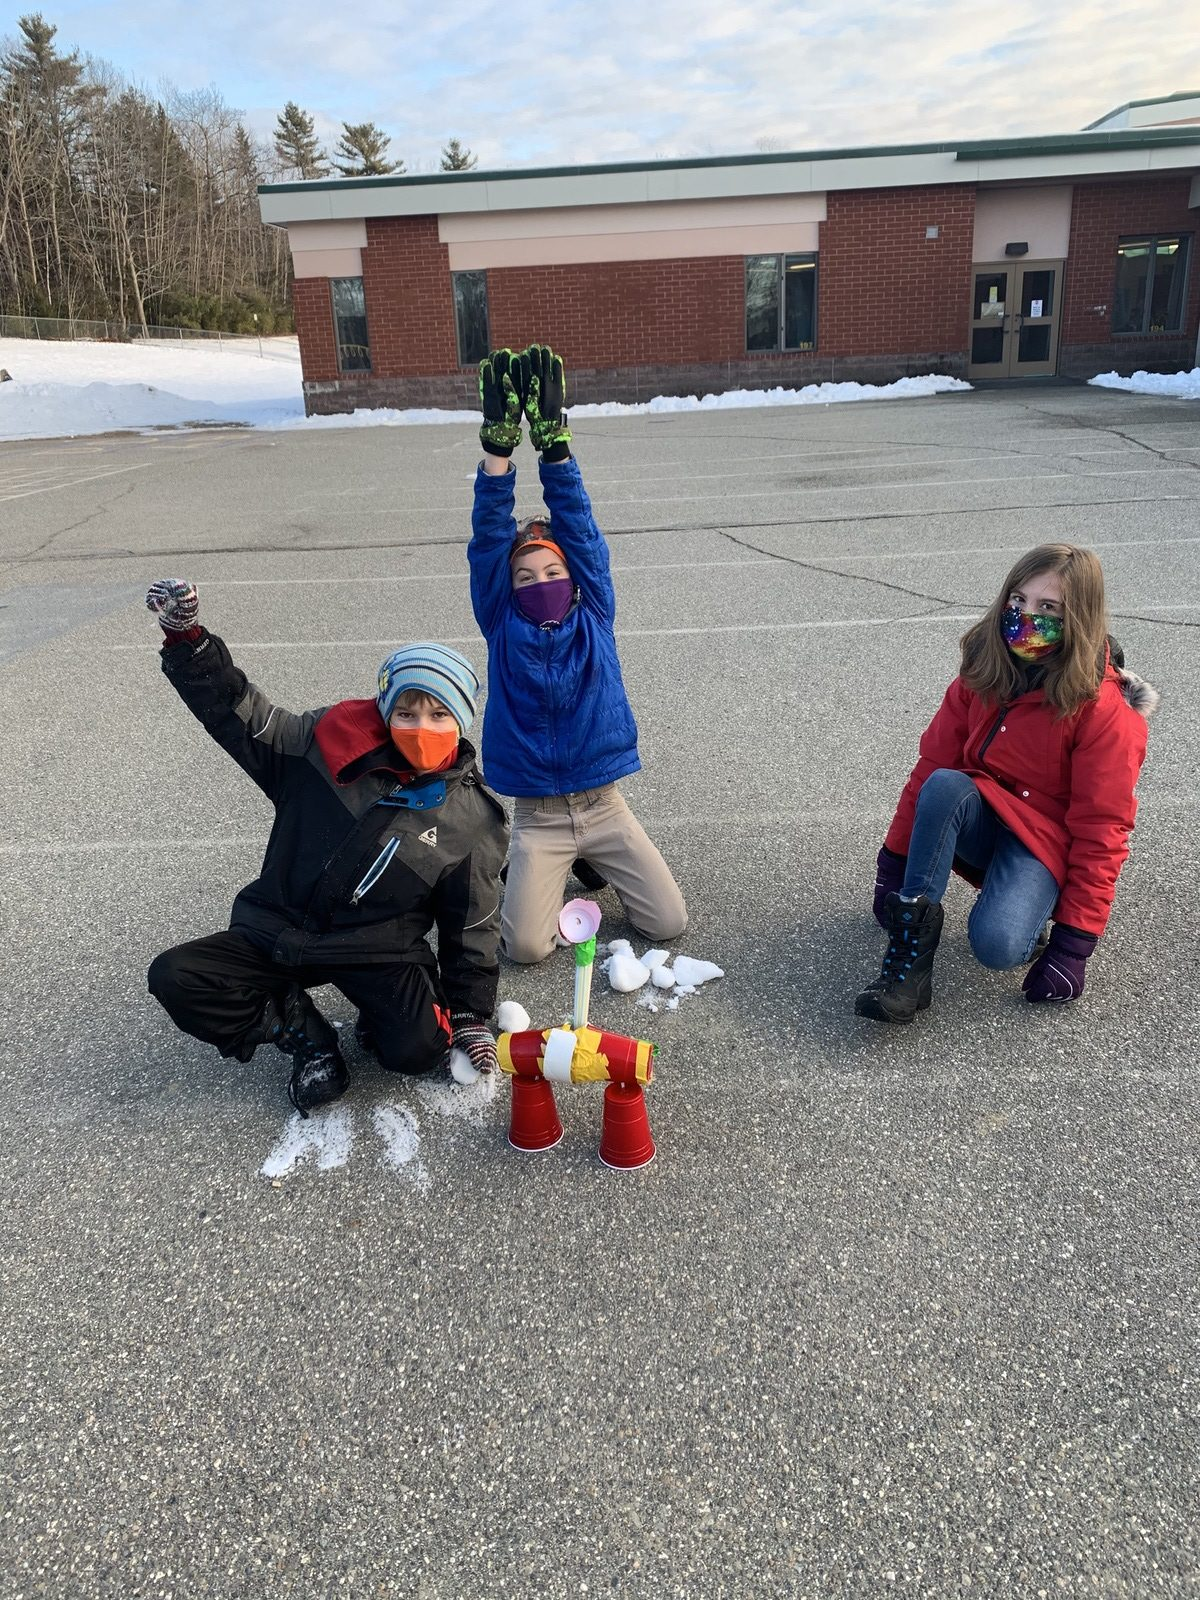 Week 1 3 4th Grade Miles Lane Entry 1 Winter Games 2021 Moment of the Week